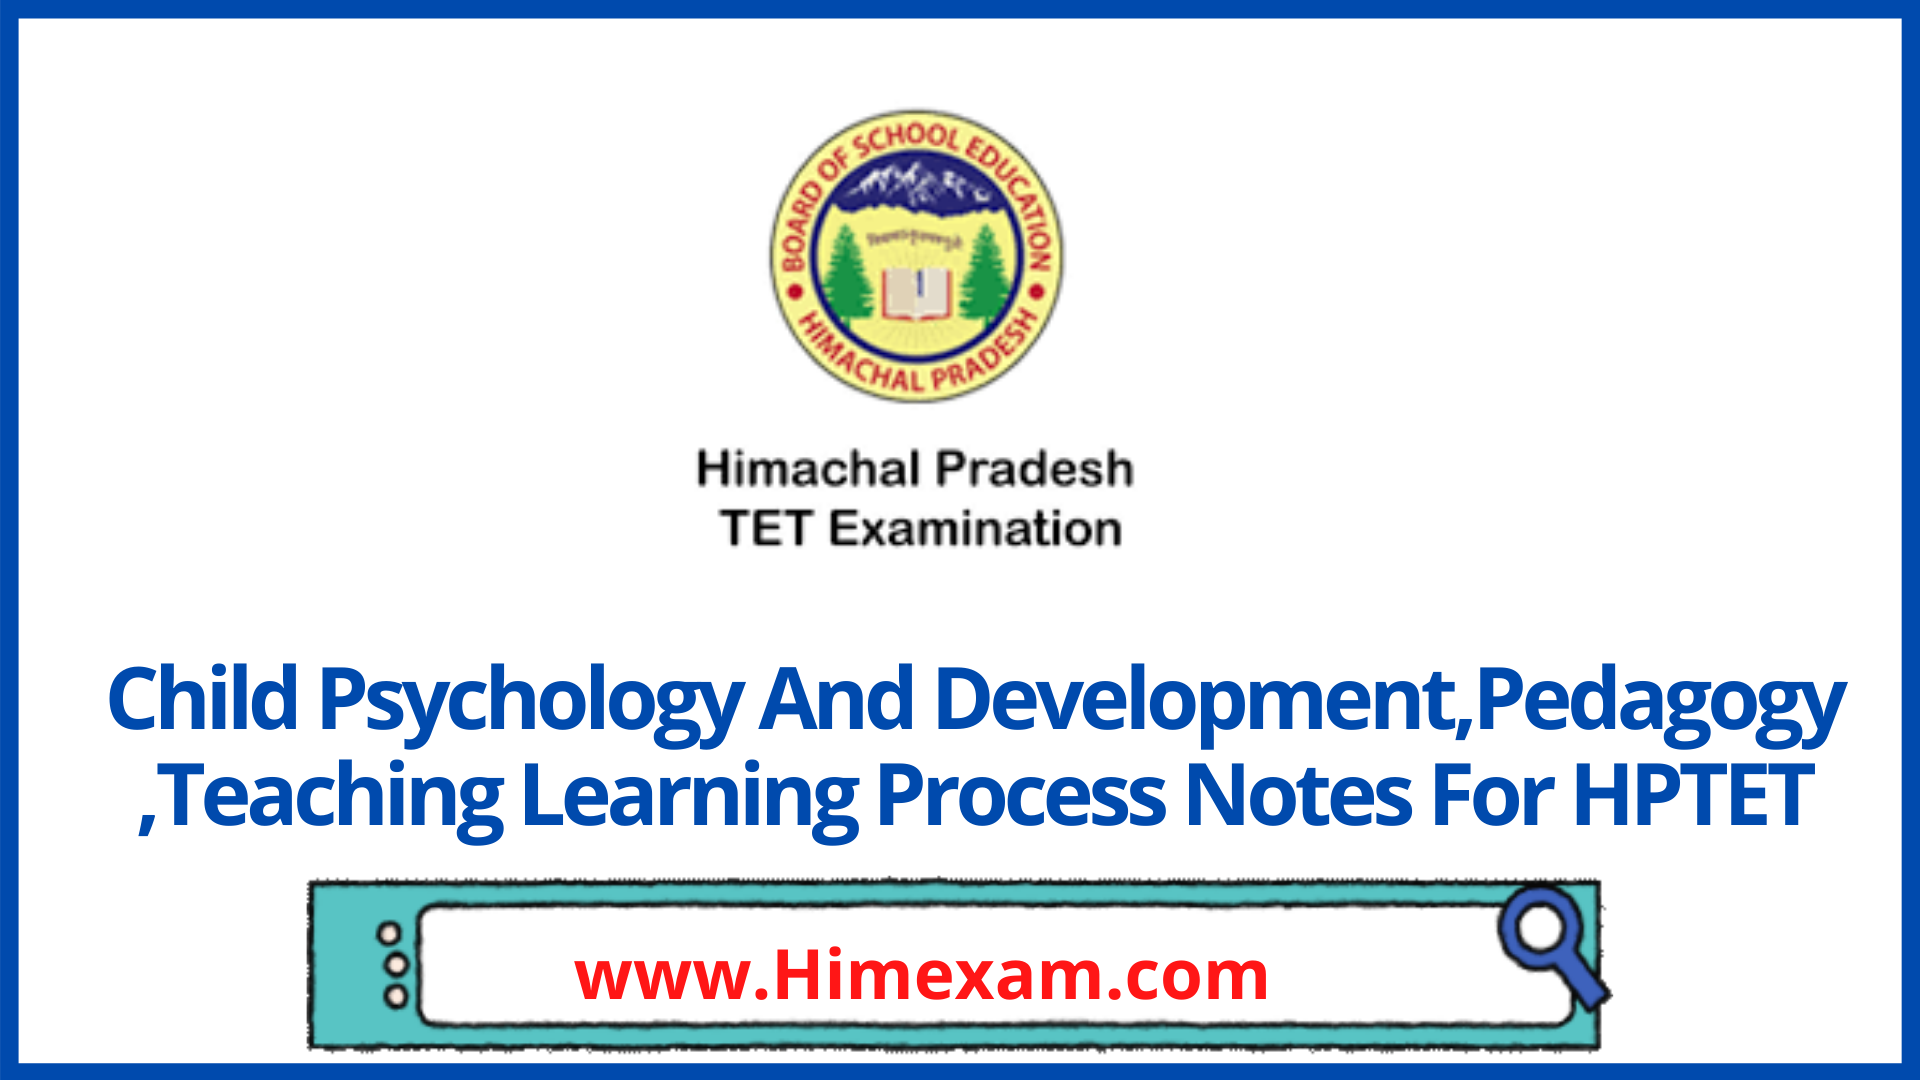 Child Psychology And Development,Pedagogy ,Teaching Learning Process Notes For HPTET